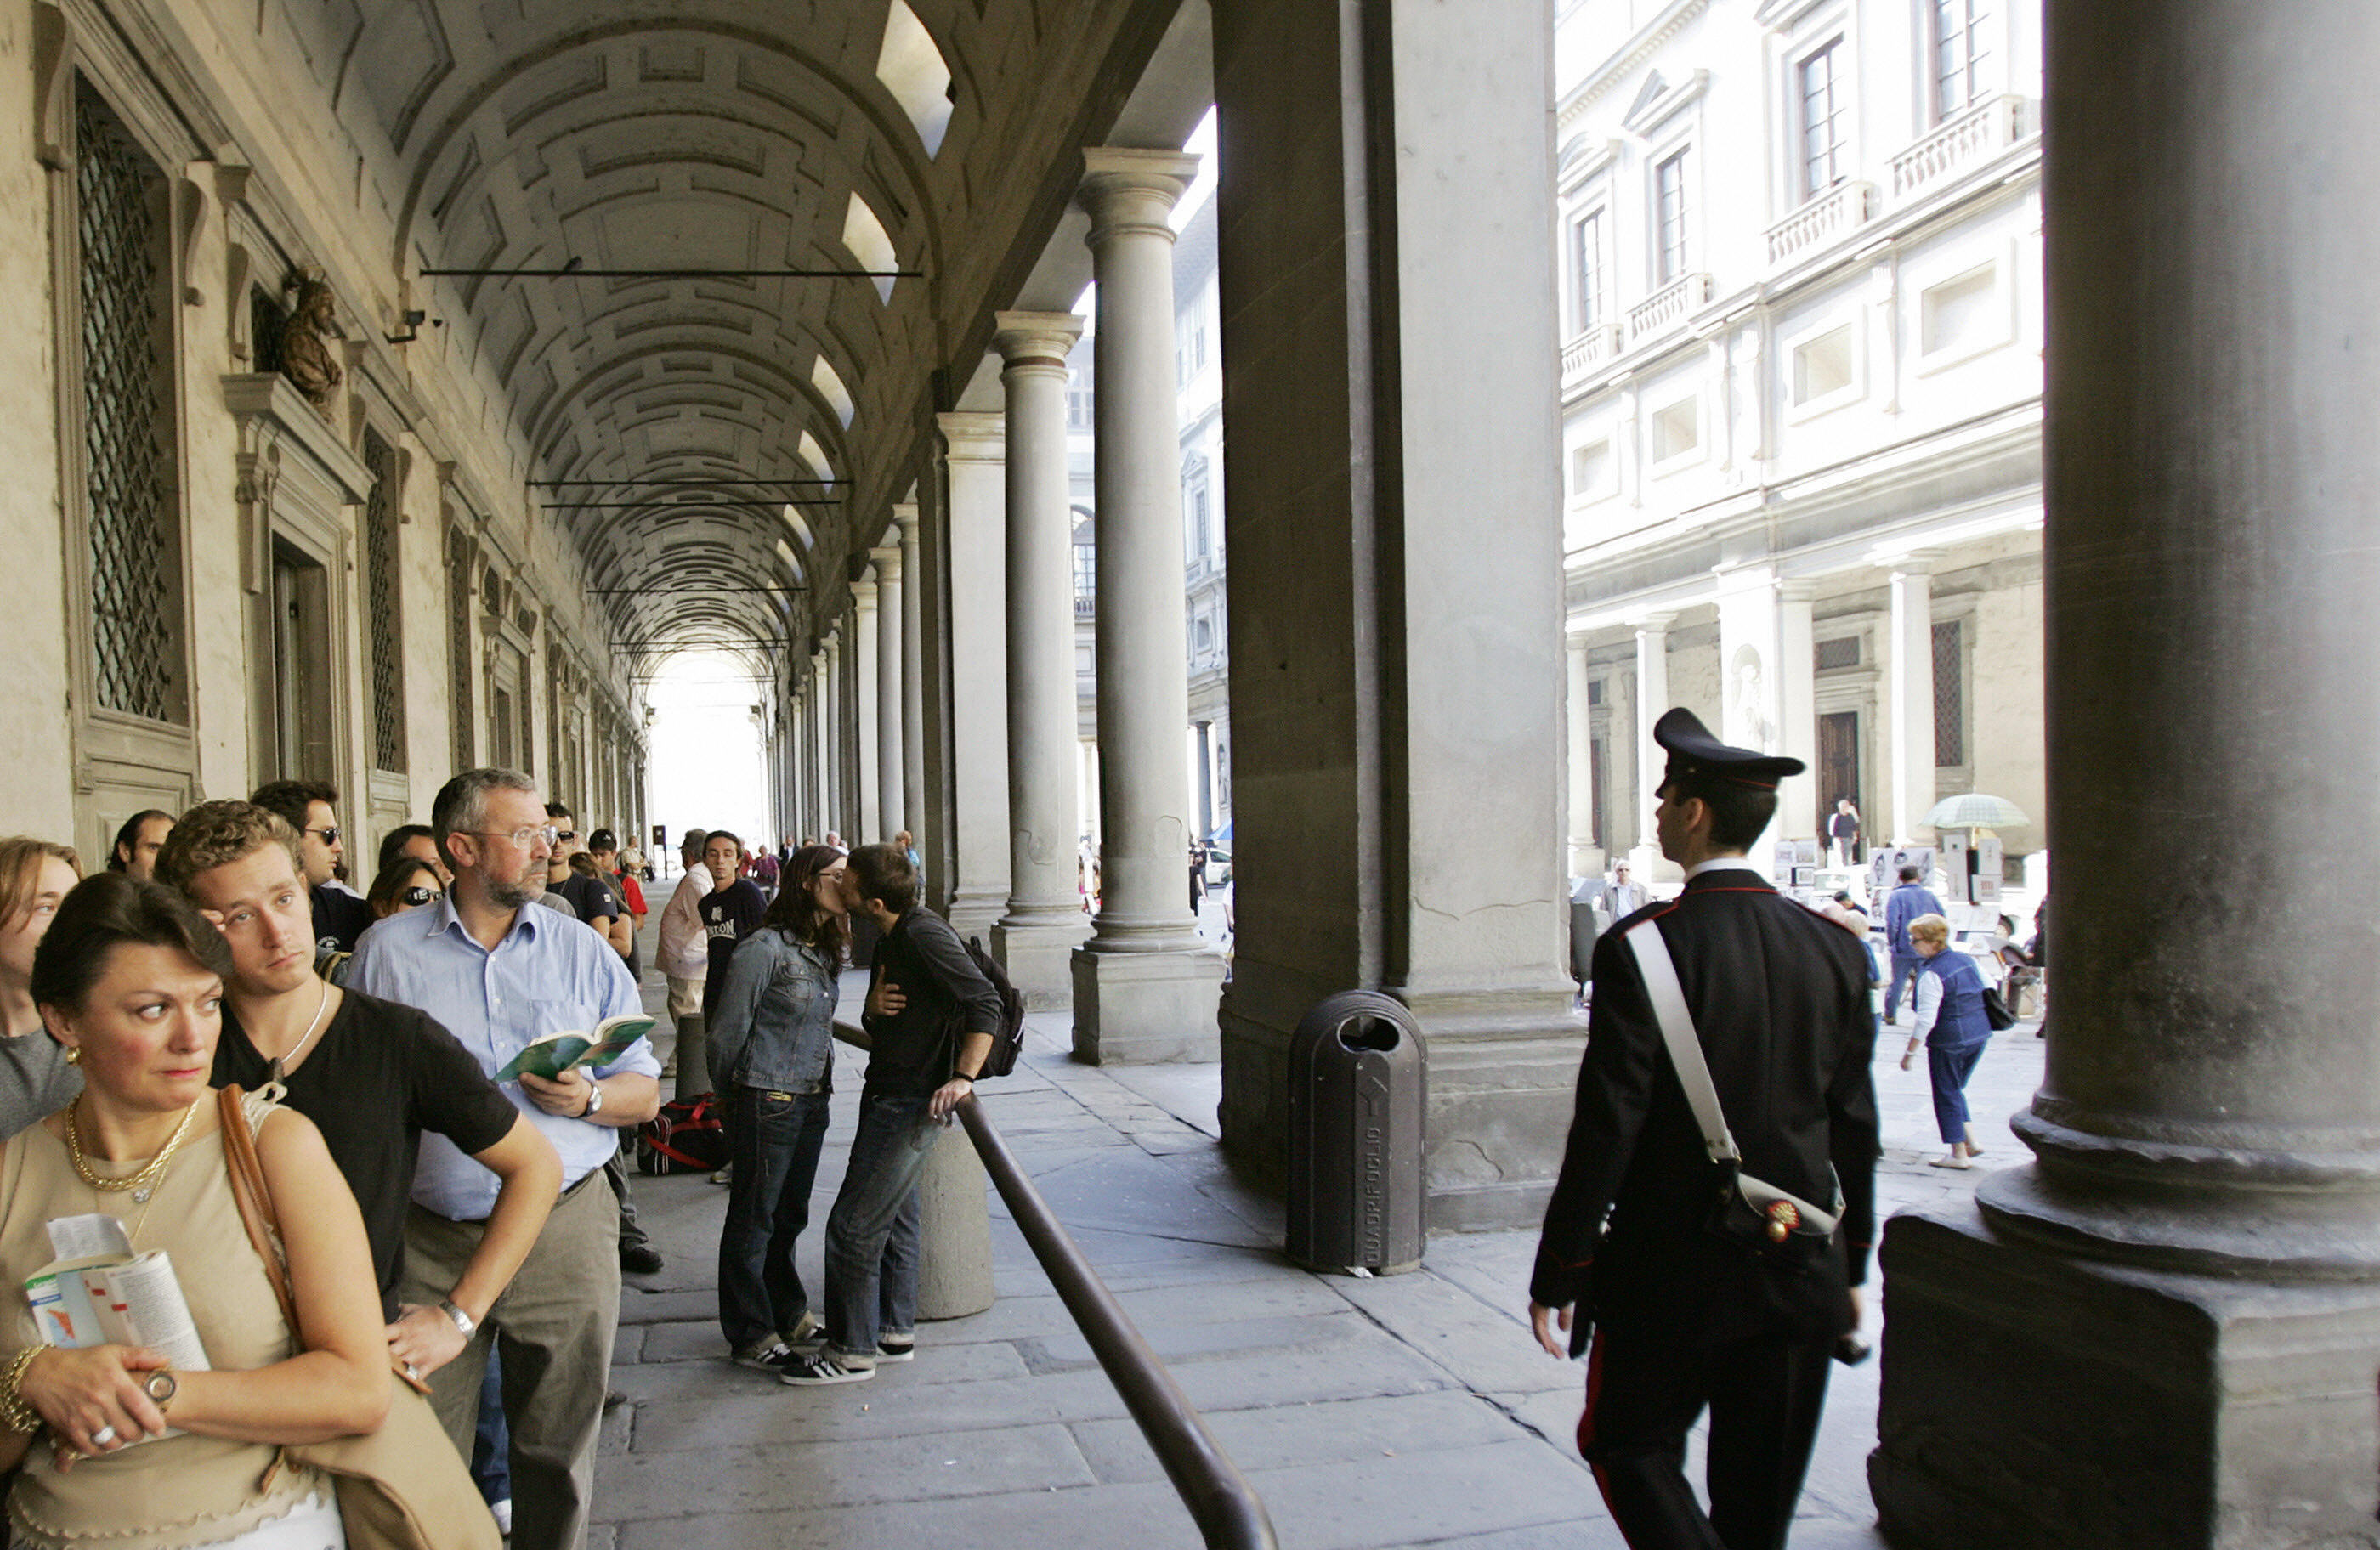 Picture of the arcades of the Uffizi in